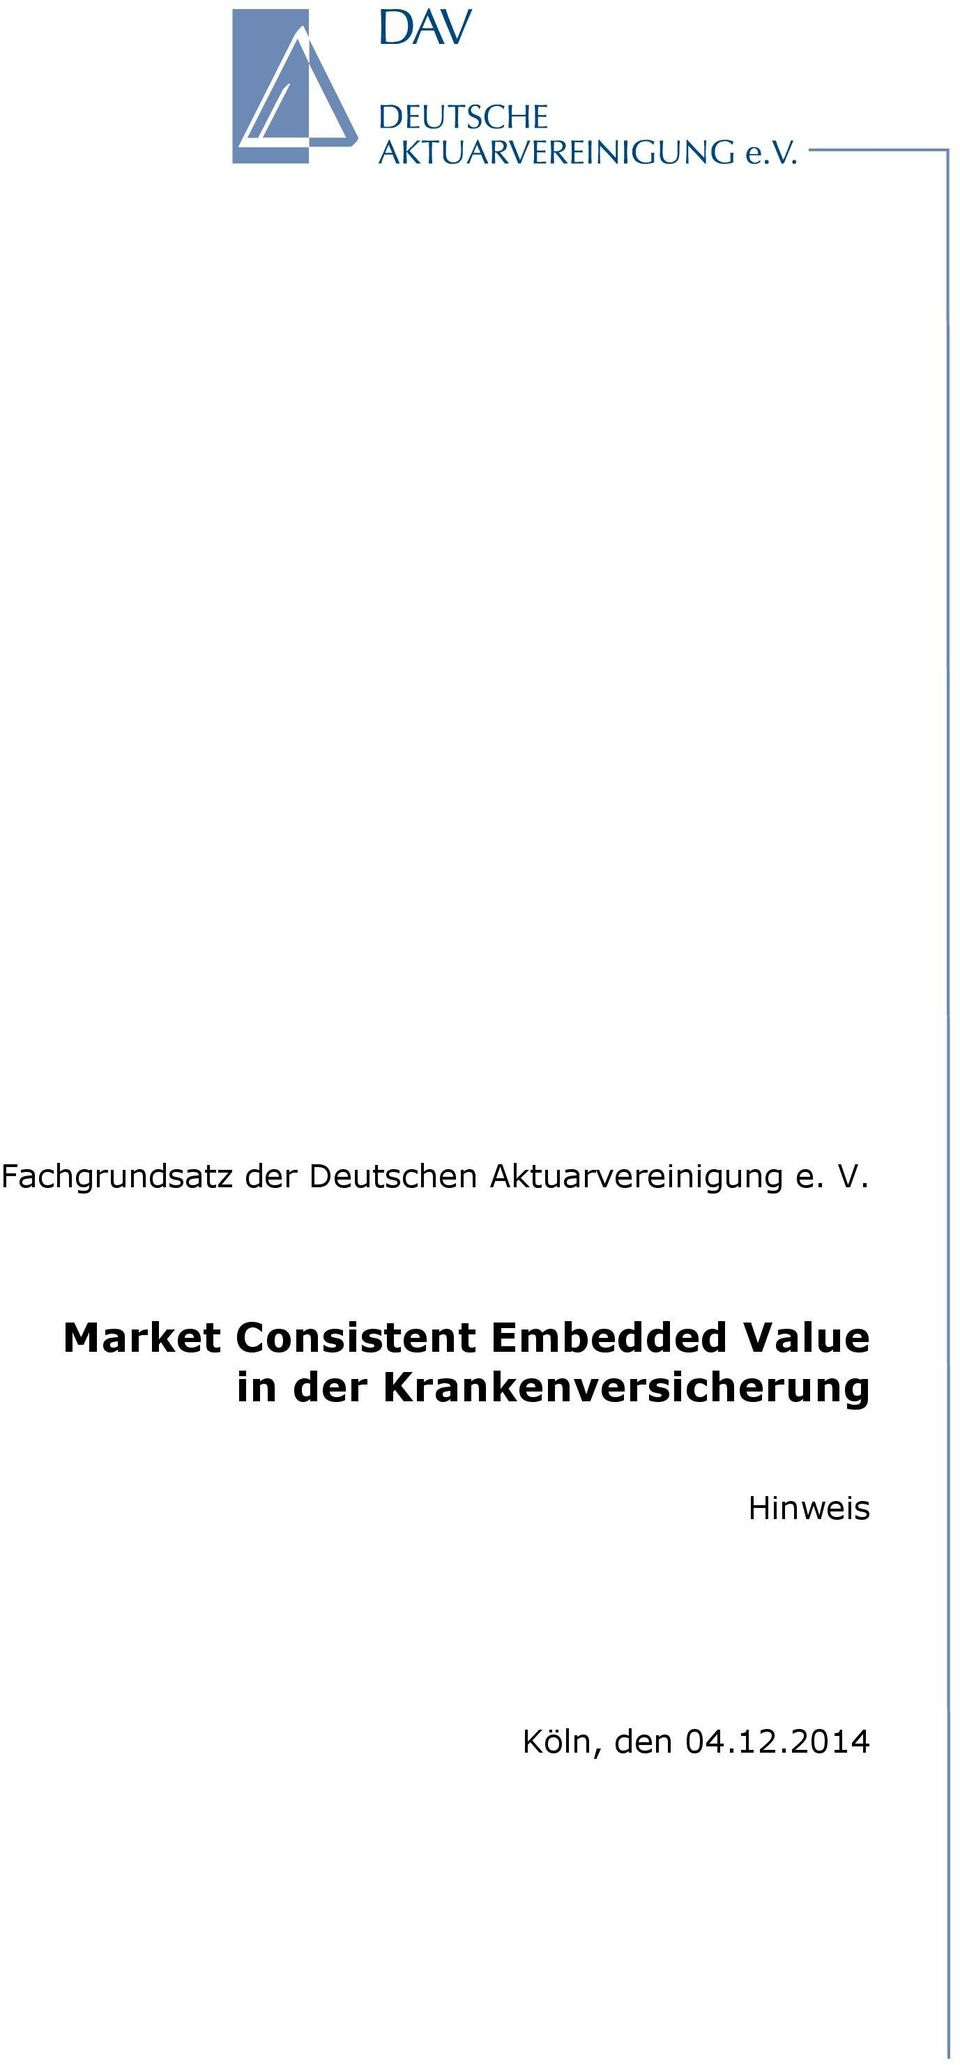 Market Consistent Embedded Value